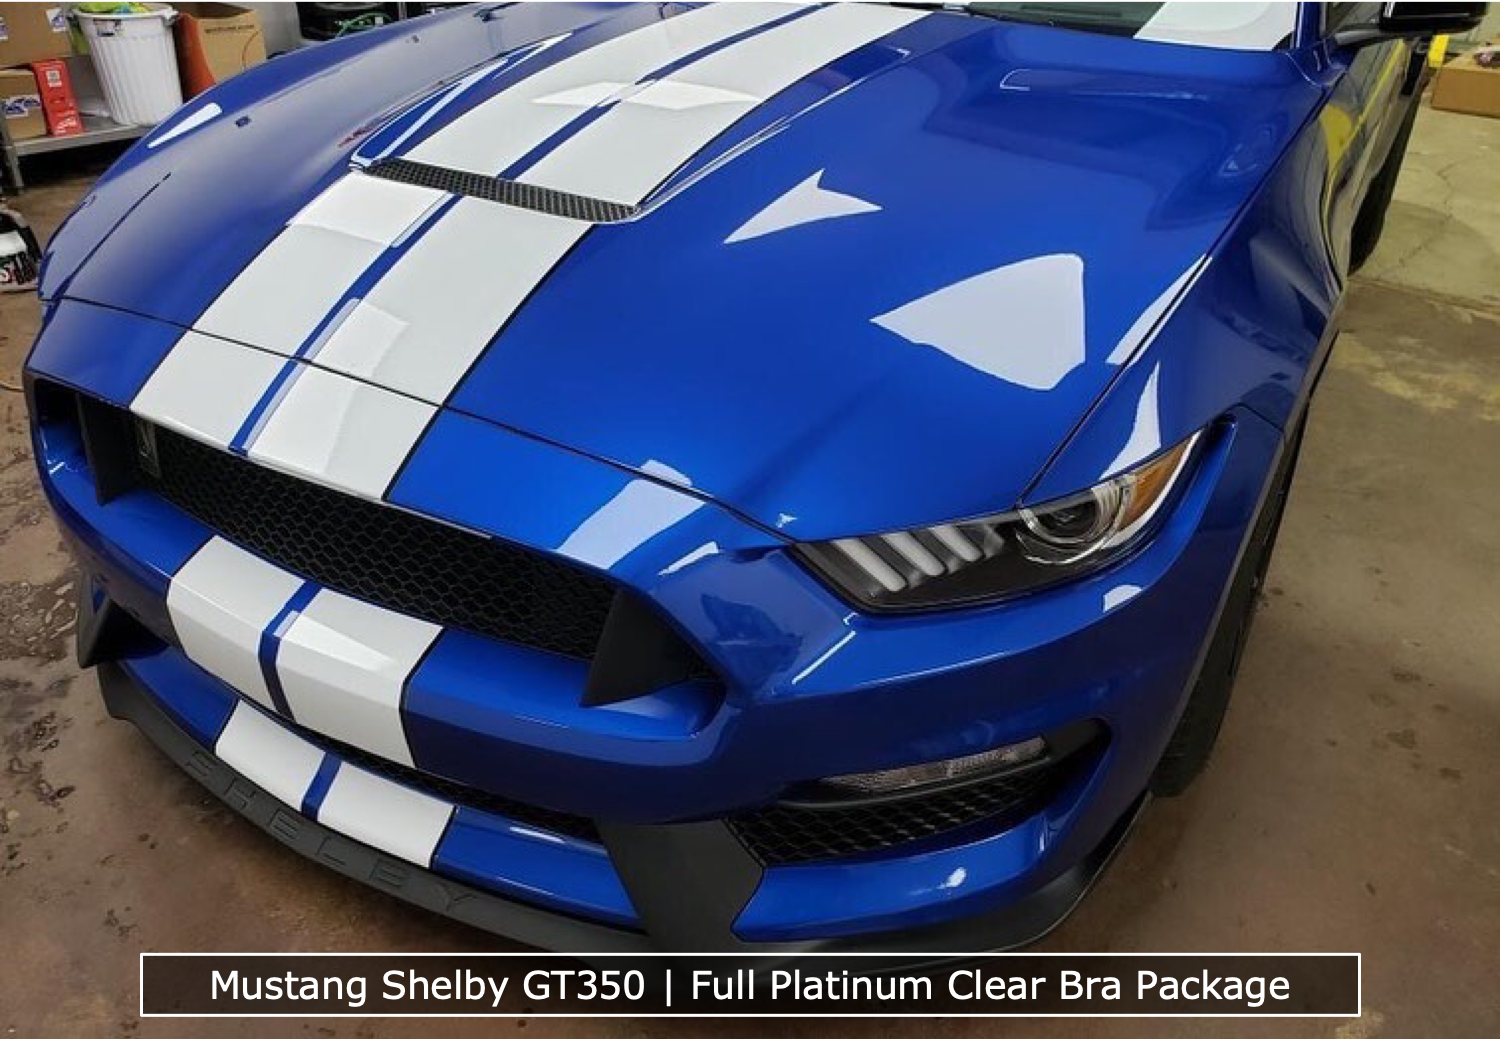 Mustang Shelby GT350 Full Platinum Clear Bra Package